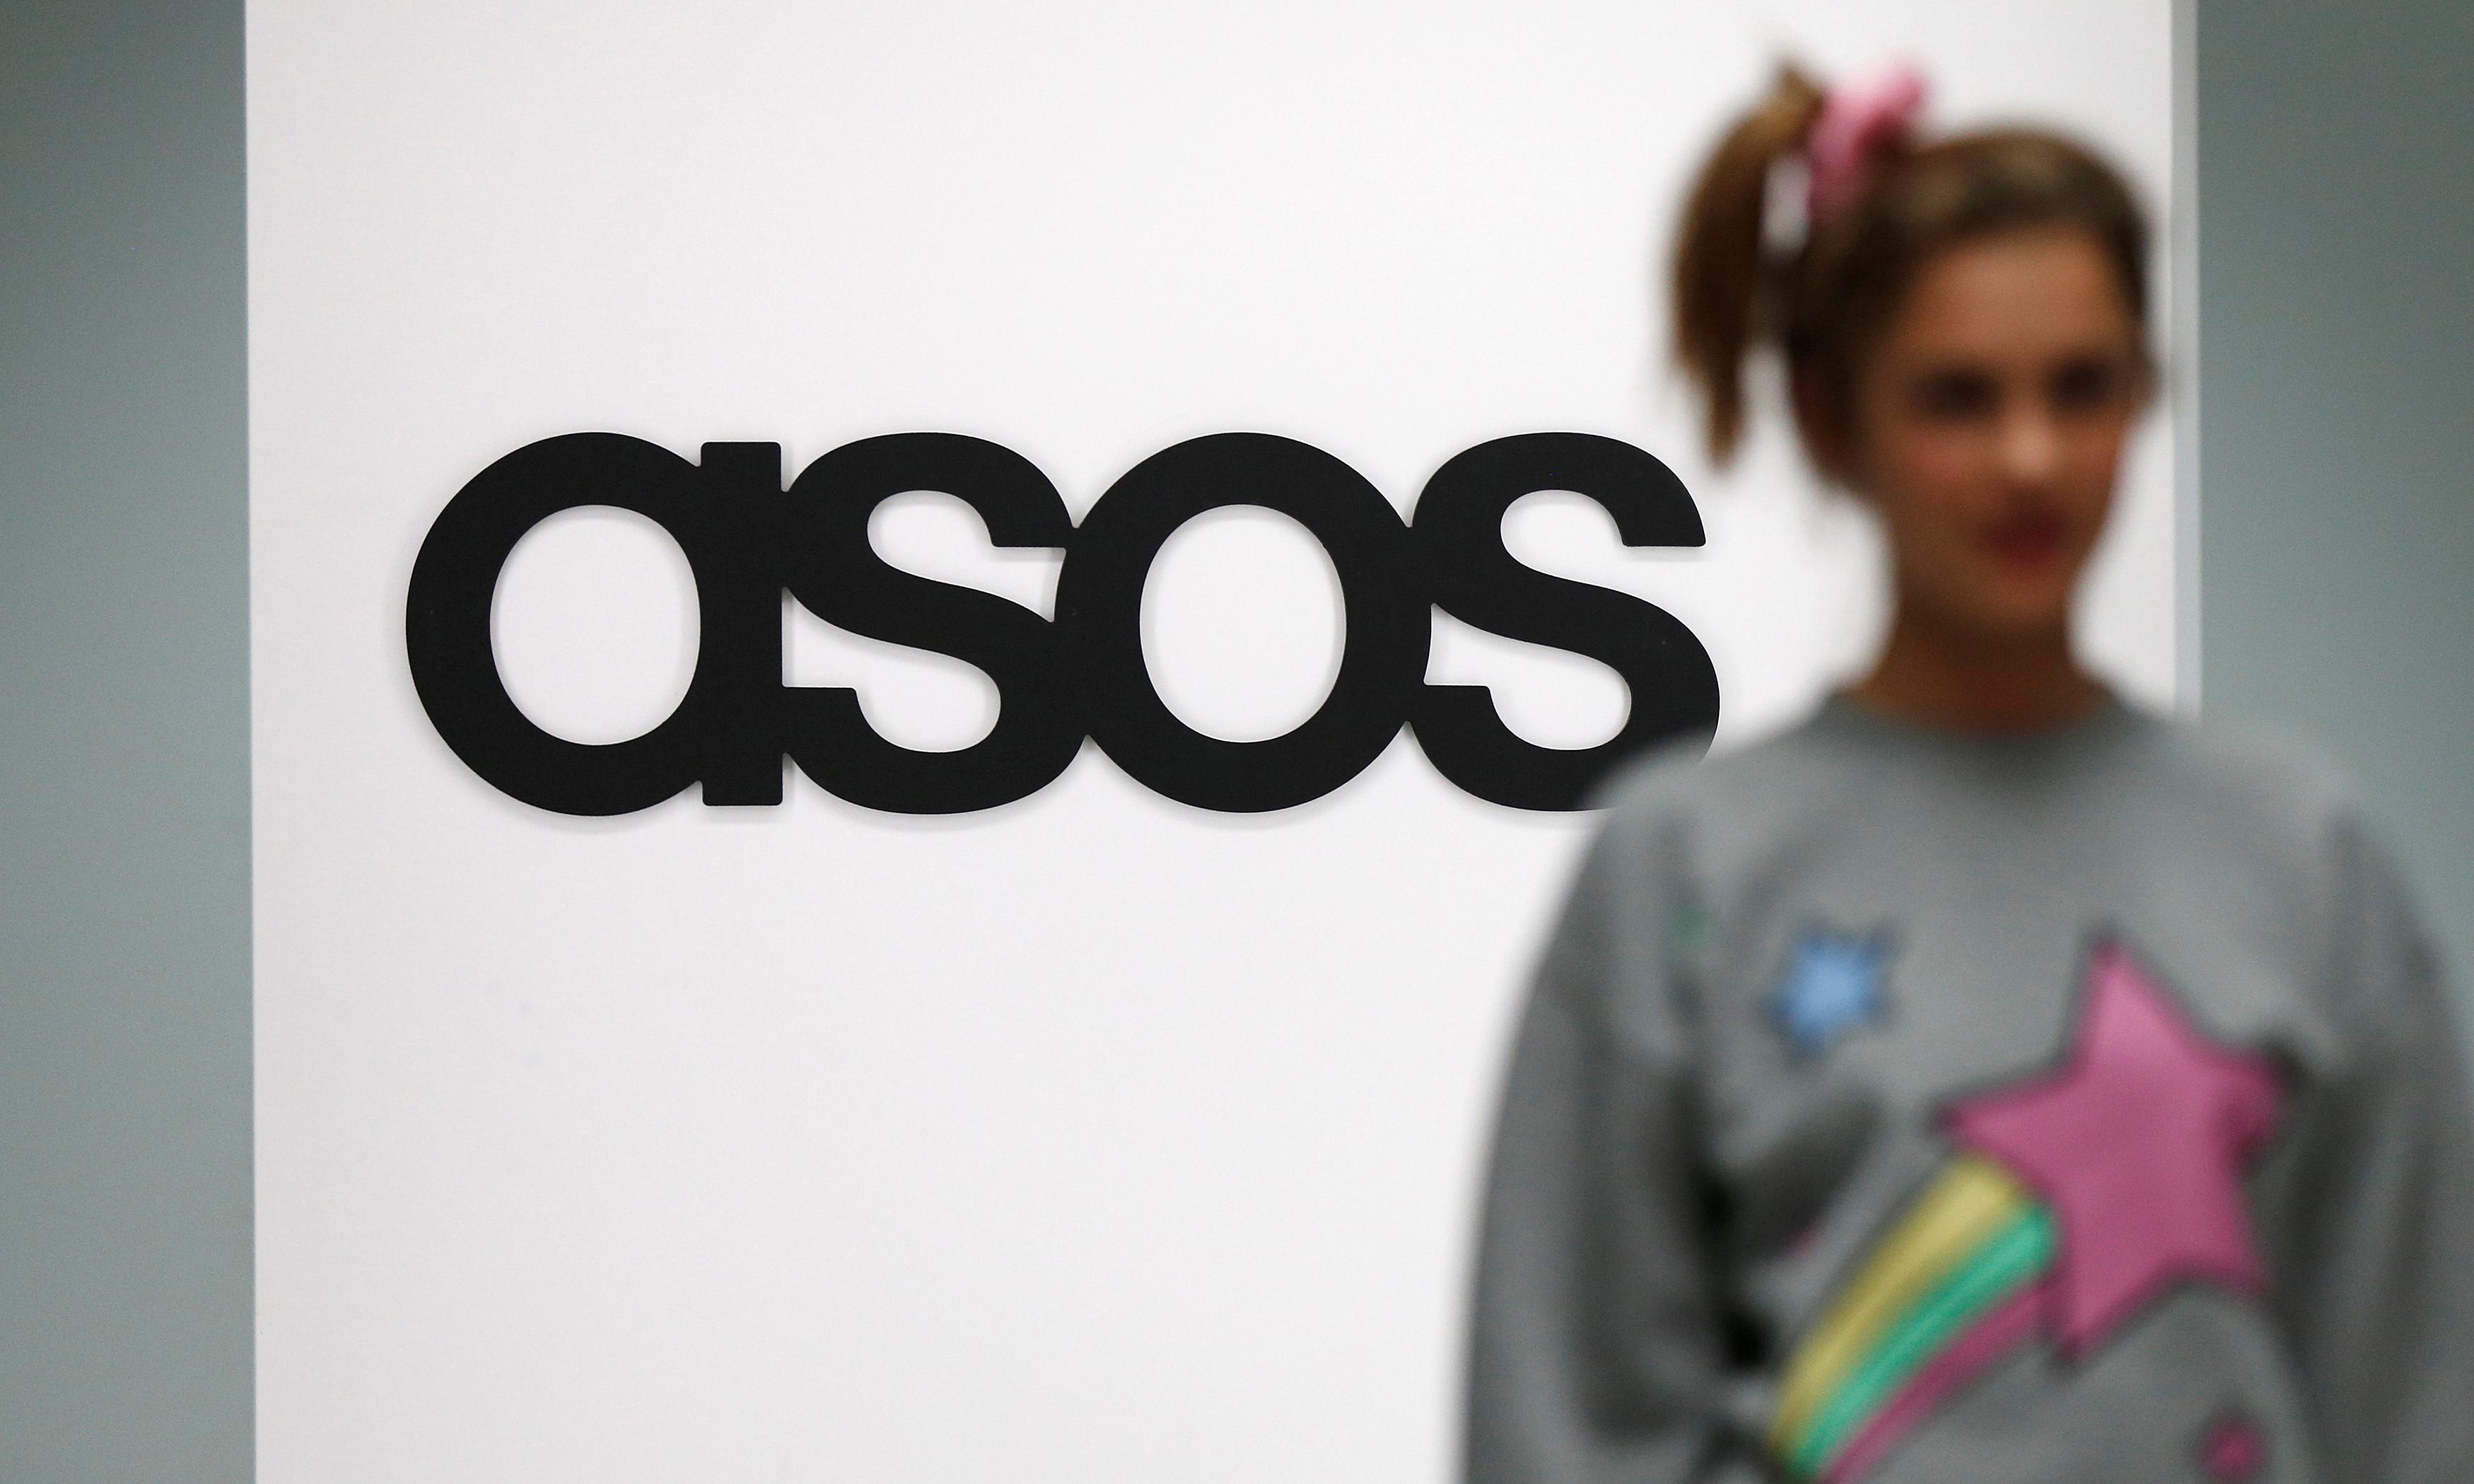 Where Asos profits will come from is anyone's guess